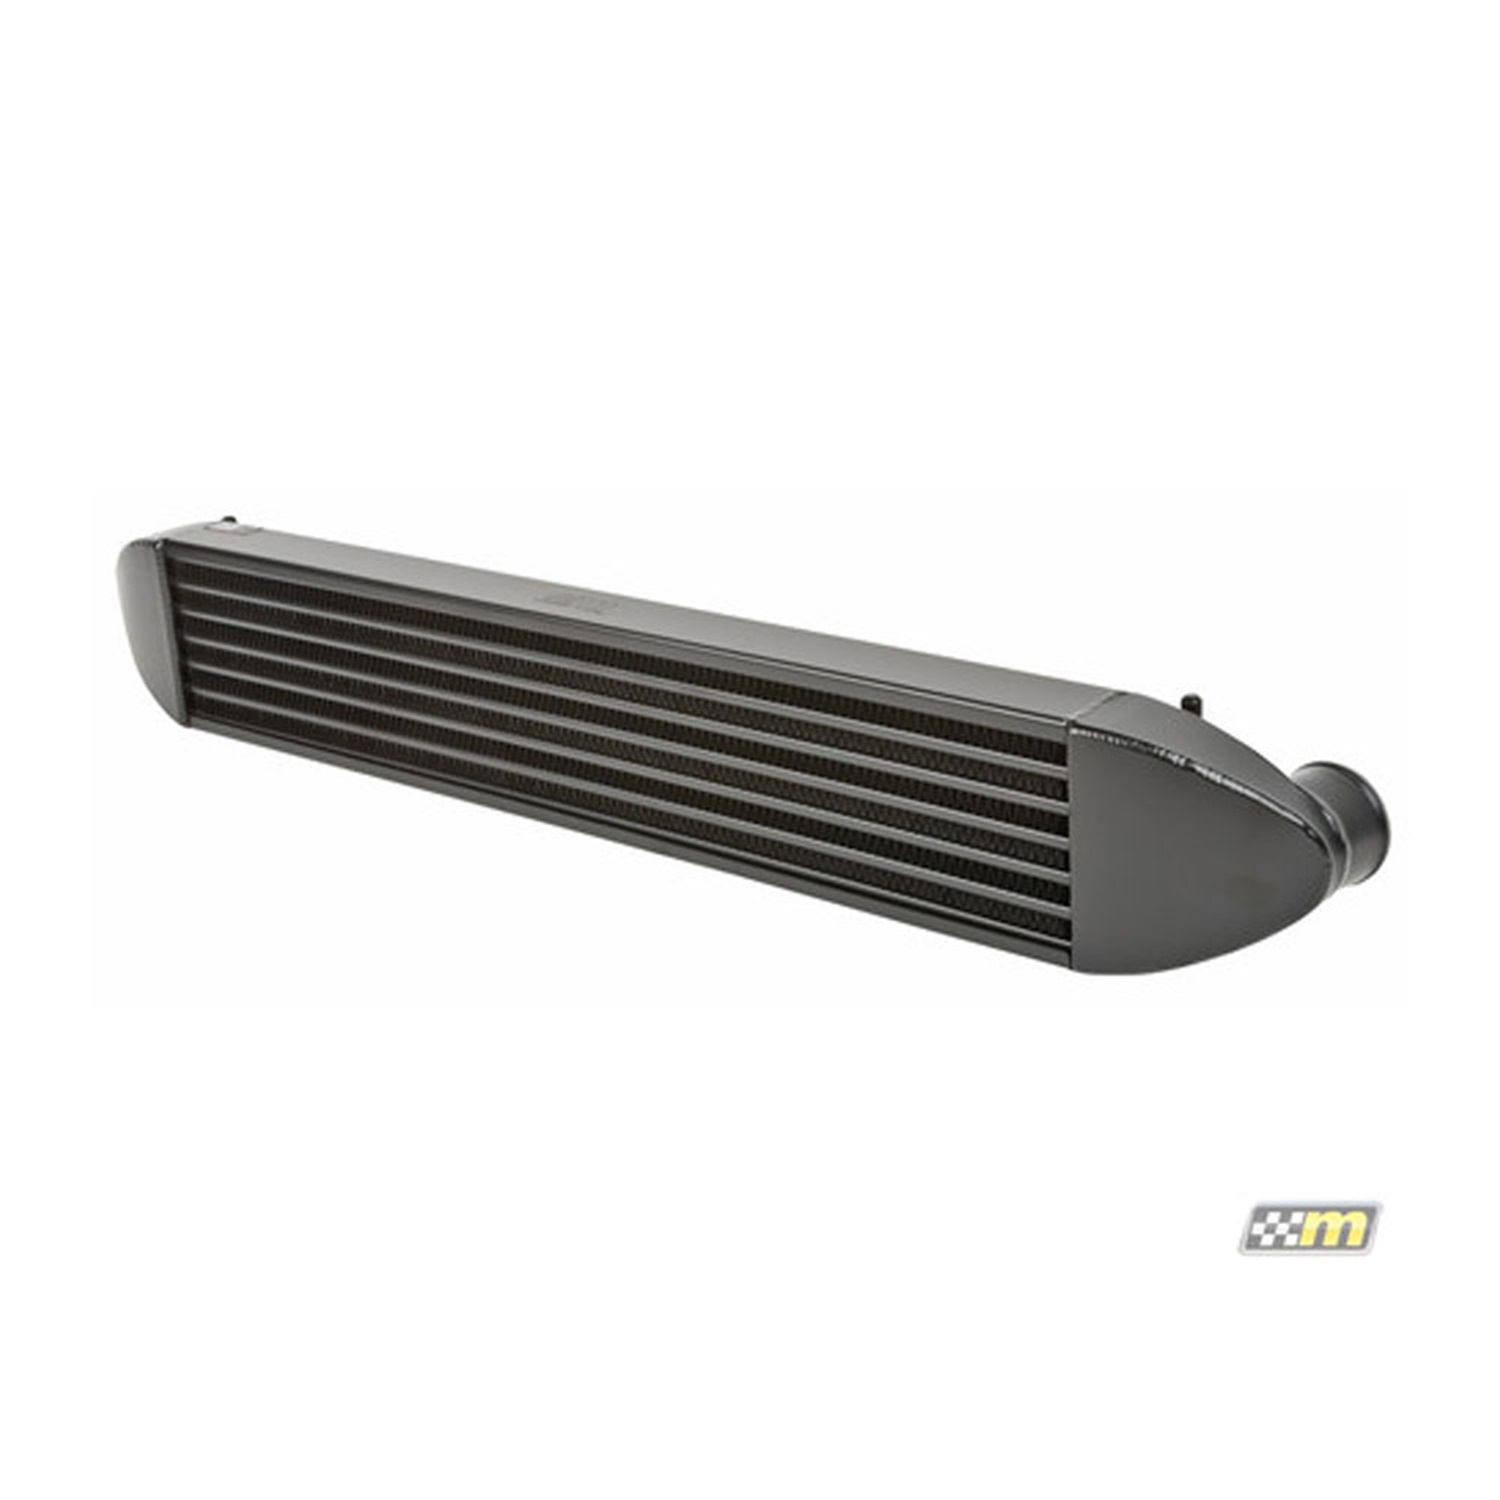 Supercharged Mustang For Sale In Texas: Buy Ford Performance Parts 2364-IC-BA Mountune Intercooler